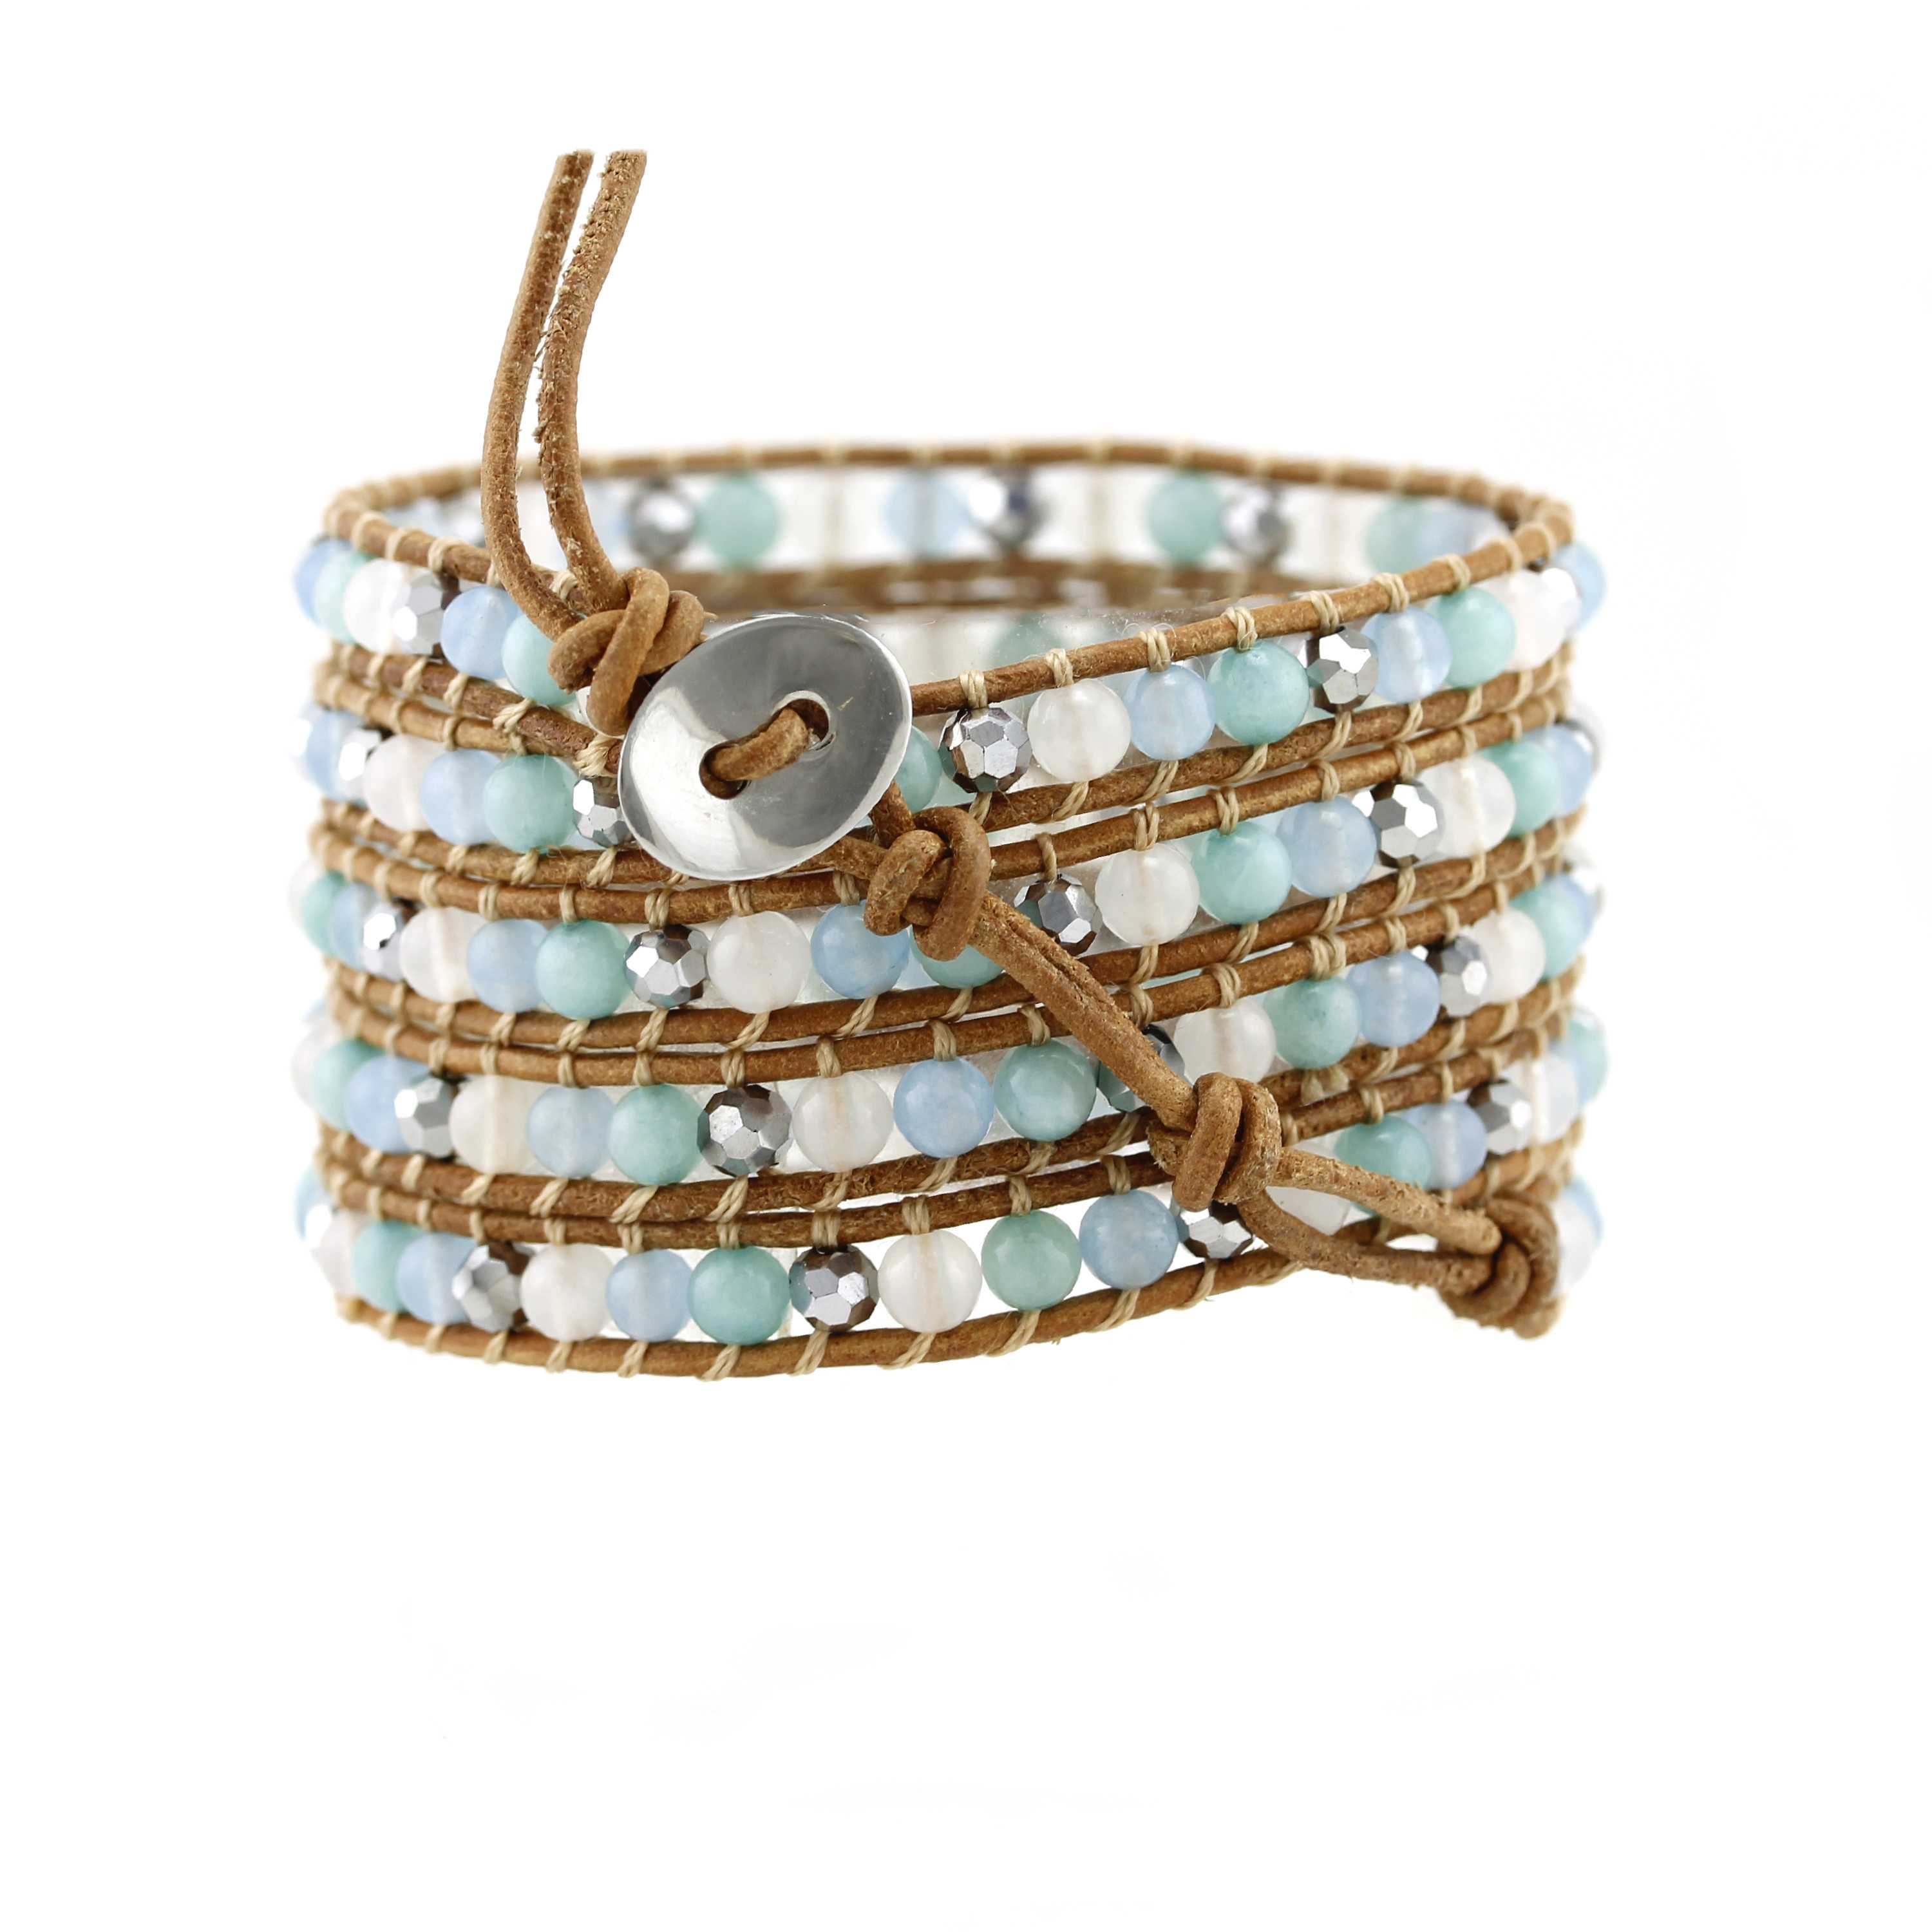 TTT Jewelry Crystal And Stone Beads Wrap Handcrafted Bracelet 5 Wraps image12